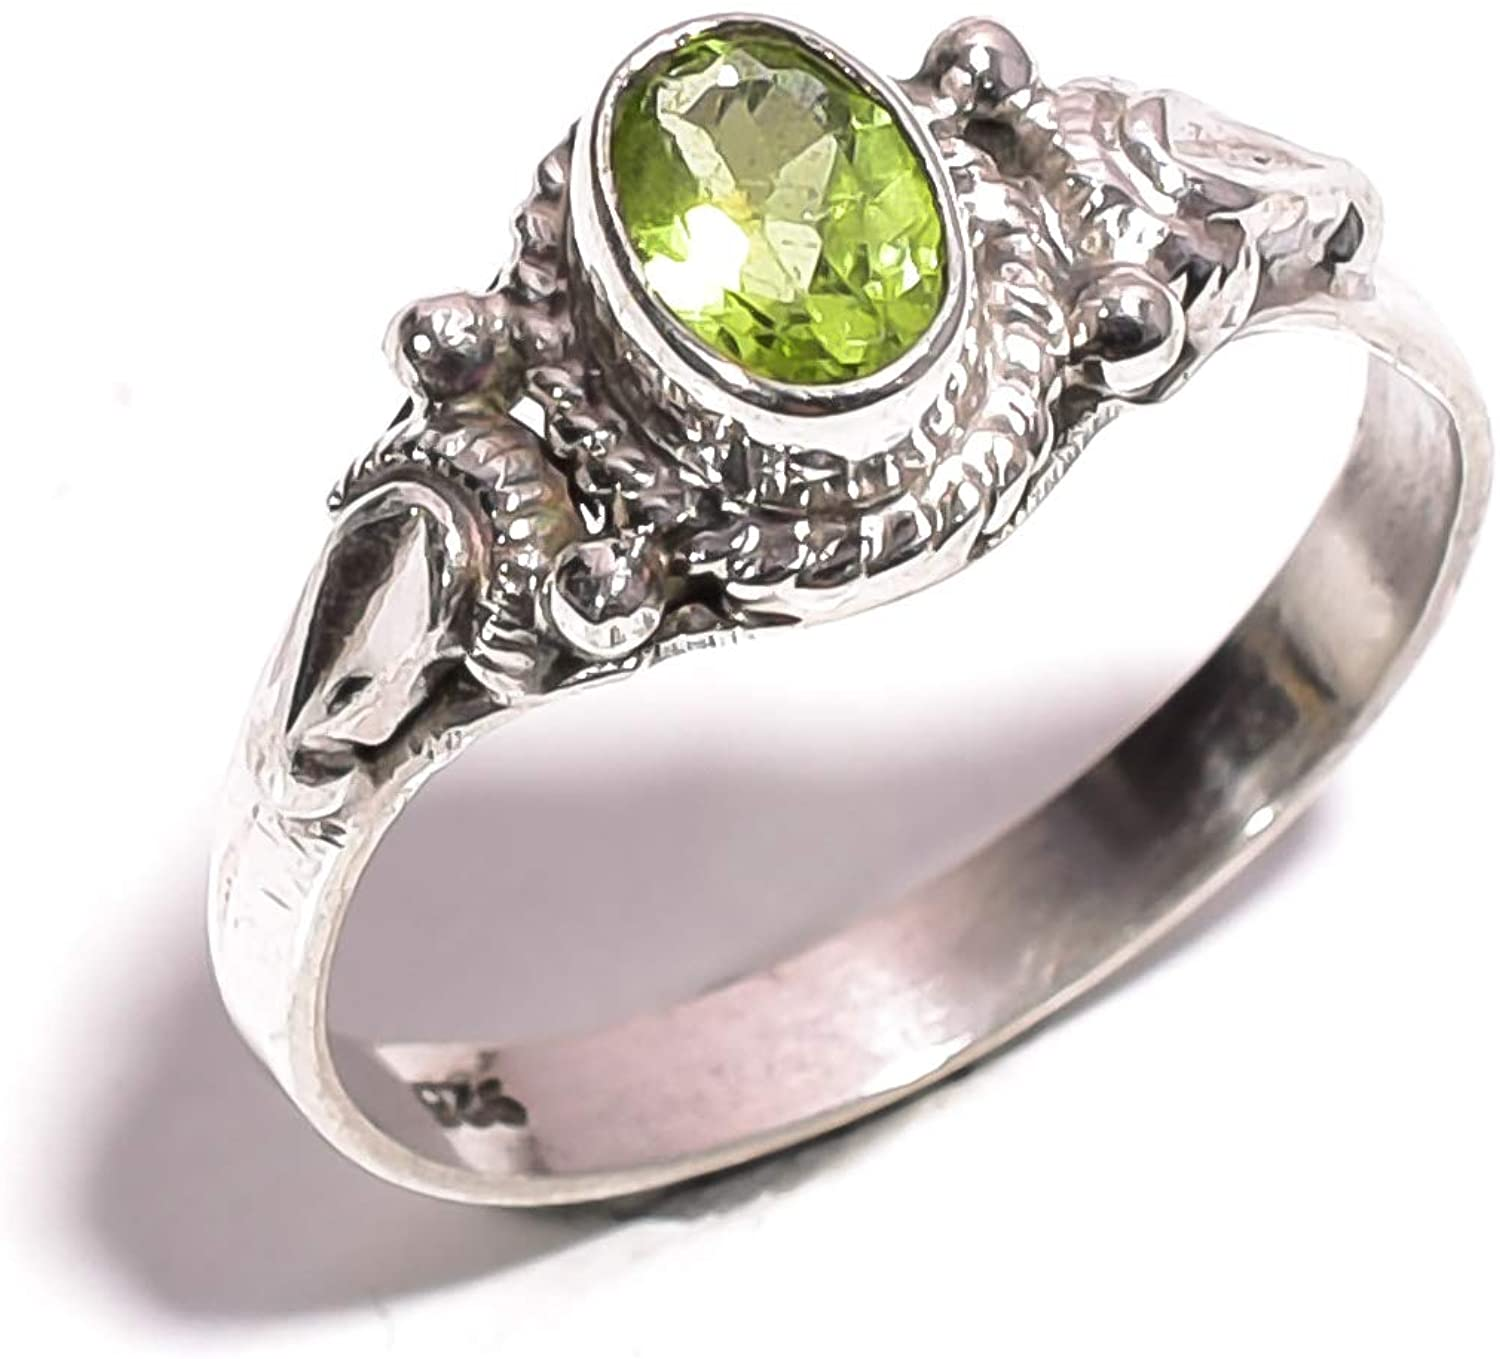 Mughal gems & jewellery 925 Sterling Silver Ring Natural Peridot Gemstone Fine Jewelry Ring for Women & Girls Size 7.25 U.S (ZR-754